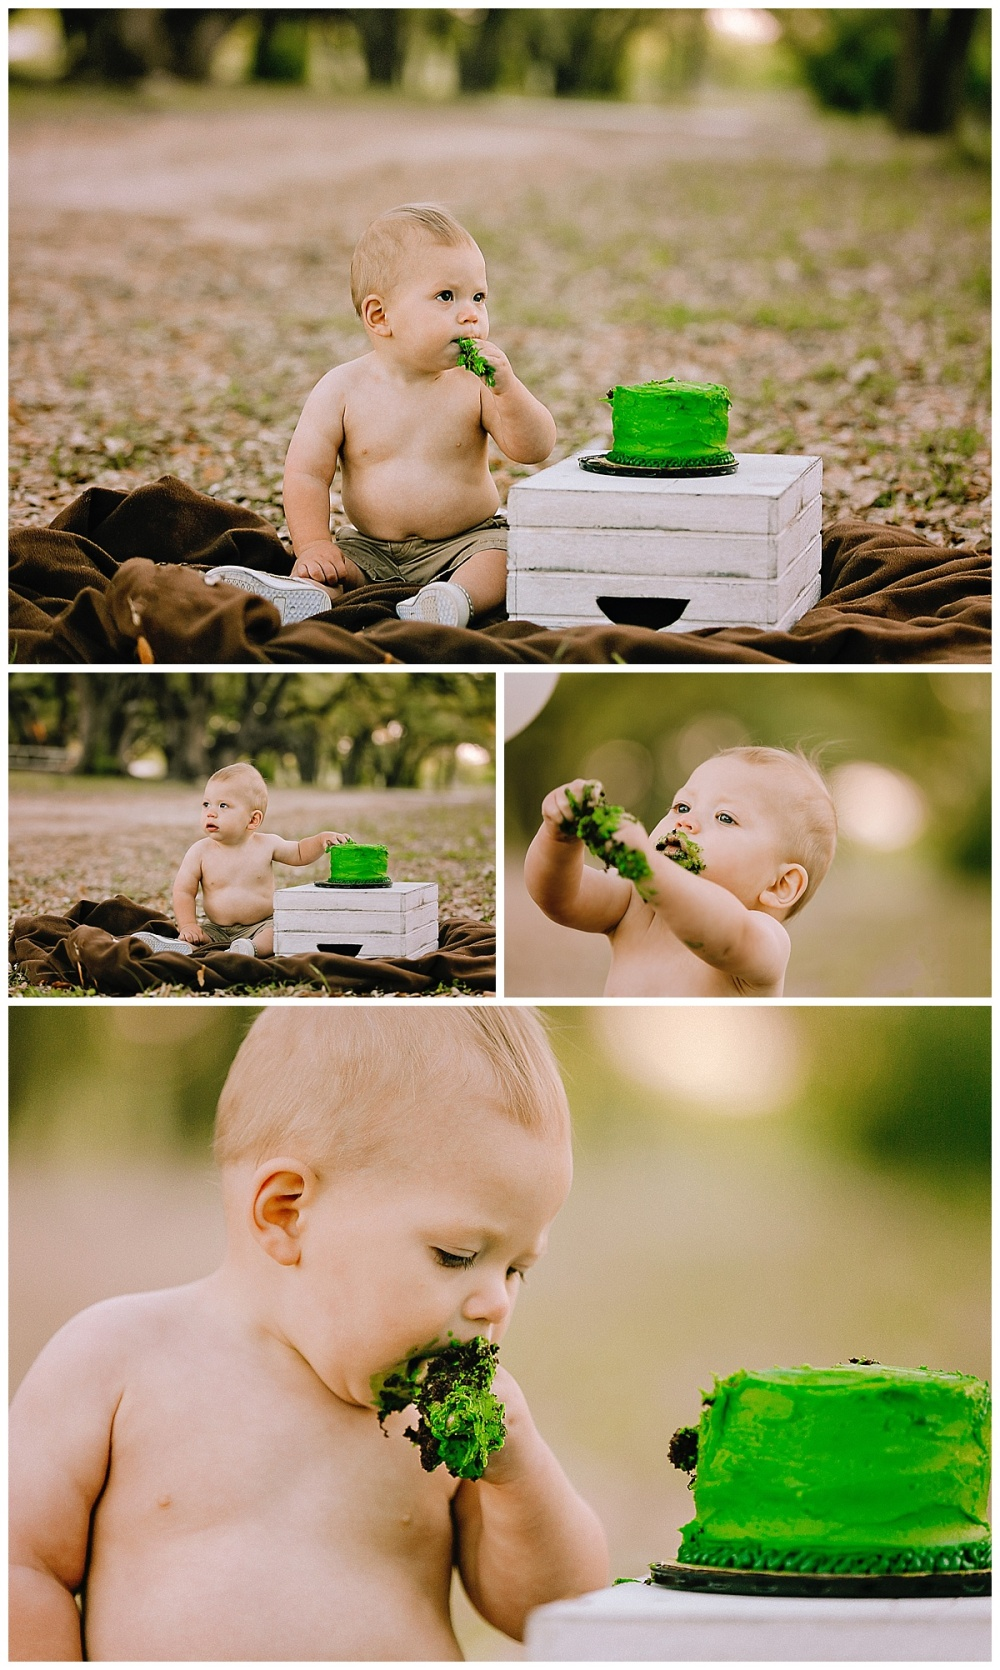 Carly-Barton-Photography-Cake-Smash-Session-LaVernia-Texas-Hill-Country-Gault_0156.jpg